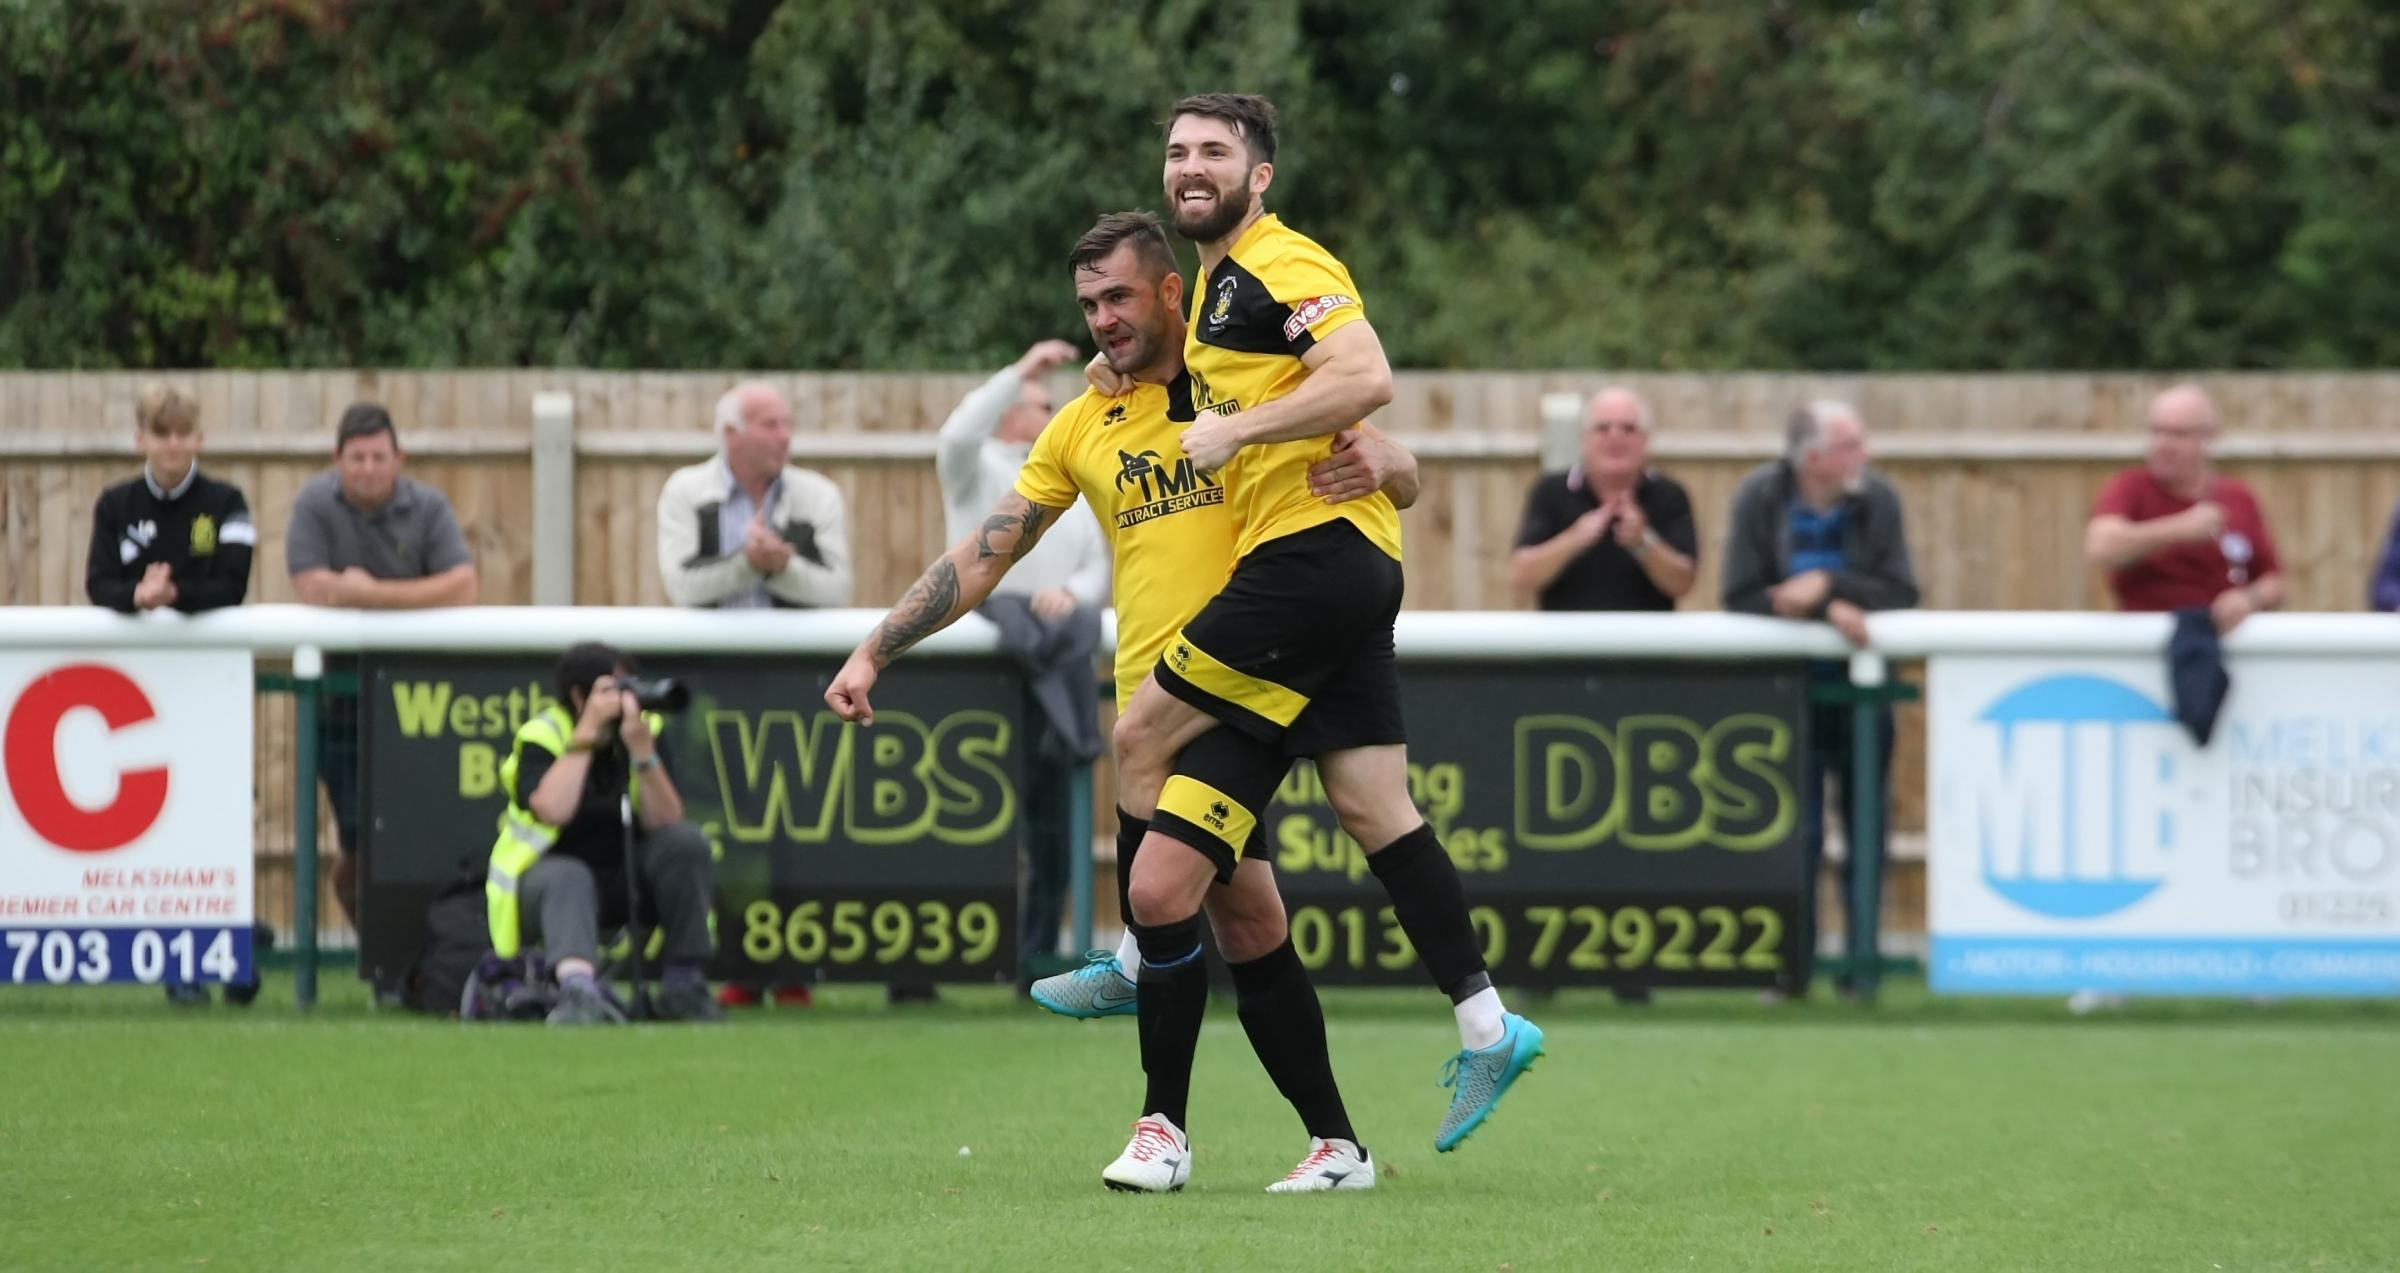 Andy Sandell celebrates his goal for Melksham Town during the 2-2 draw with Bristol Manor Farm. Picture: ROBIN FOSTER